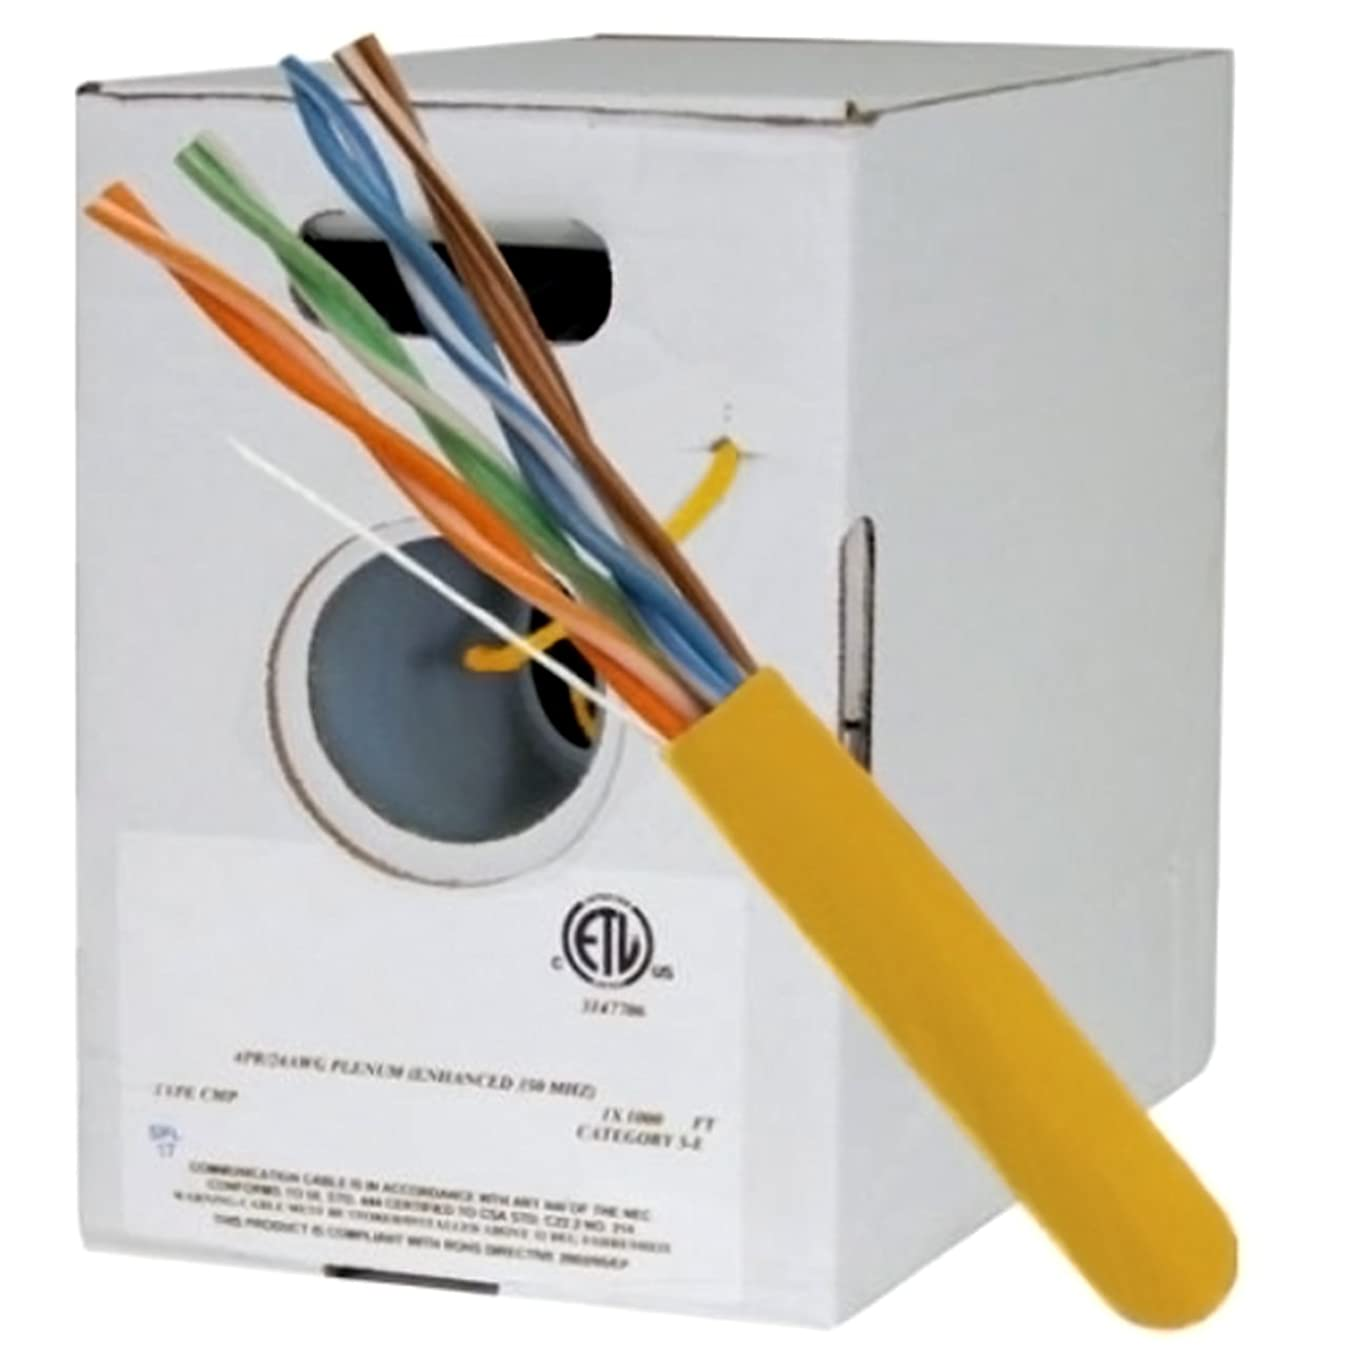 CAT5E, 350 MHz, UTP, 24AWG, 8C Solid Bare Copper, Plenum, 1000ft, Yellow, Bulk Ethernet Cable (Made in USA)